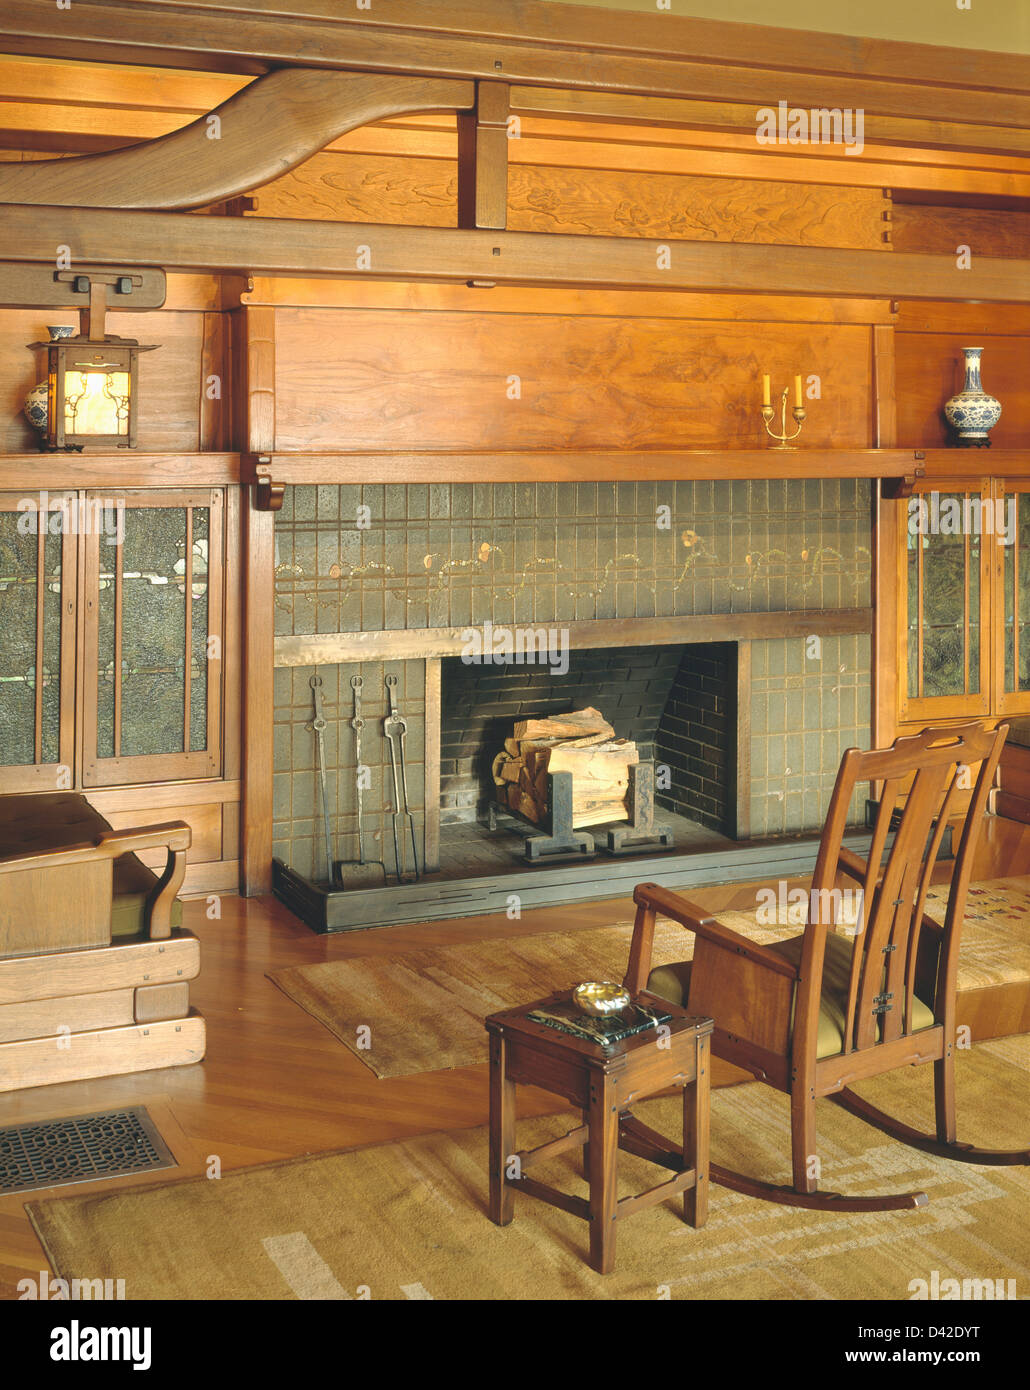 wooden table and rocking chair in front of fireplace in the gamble